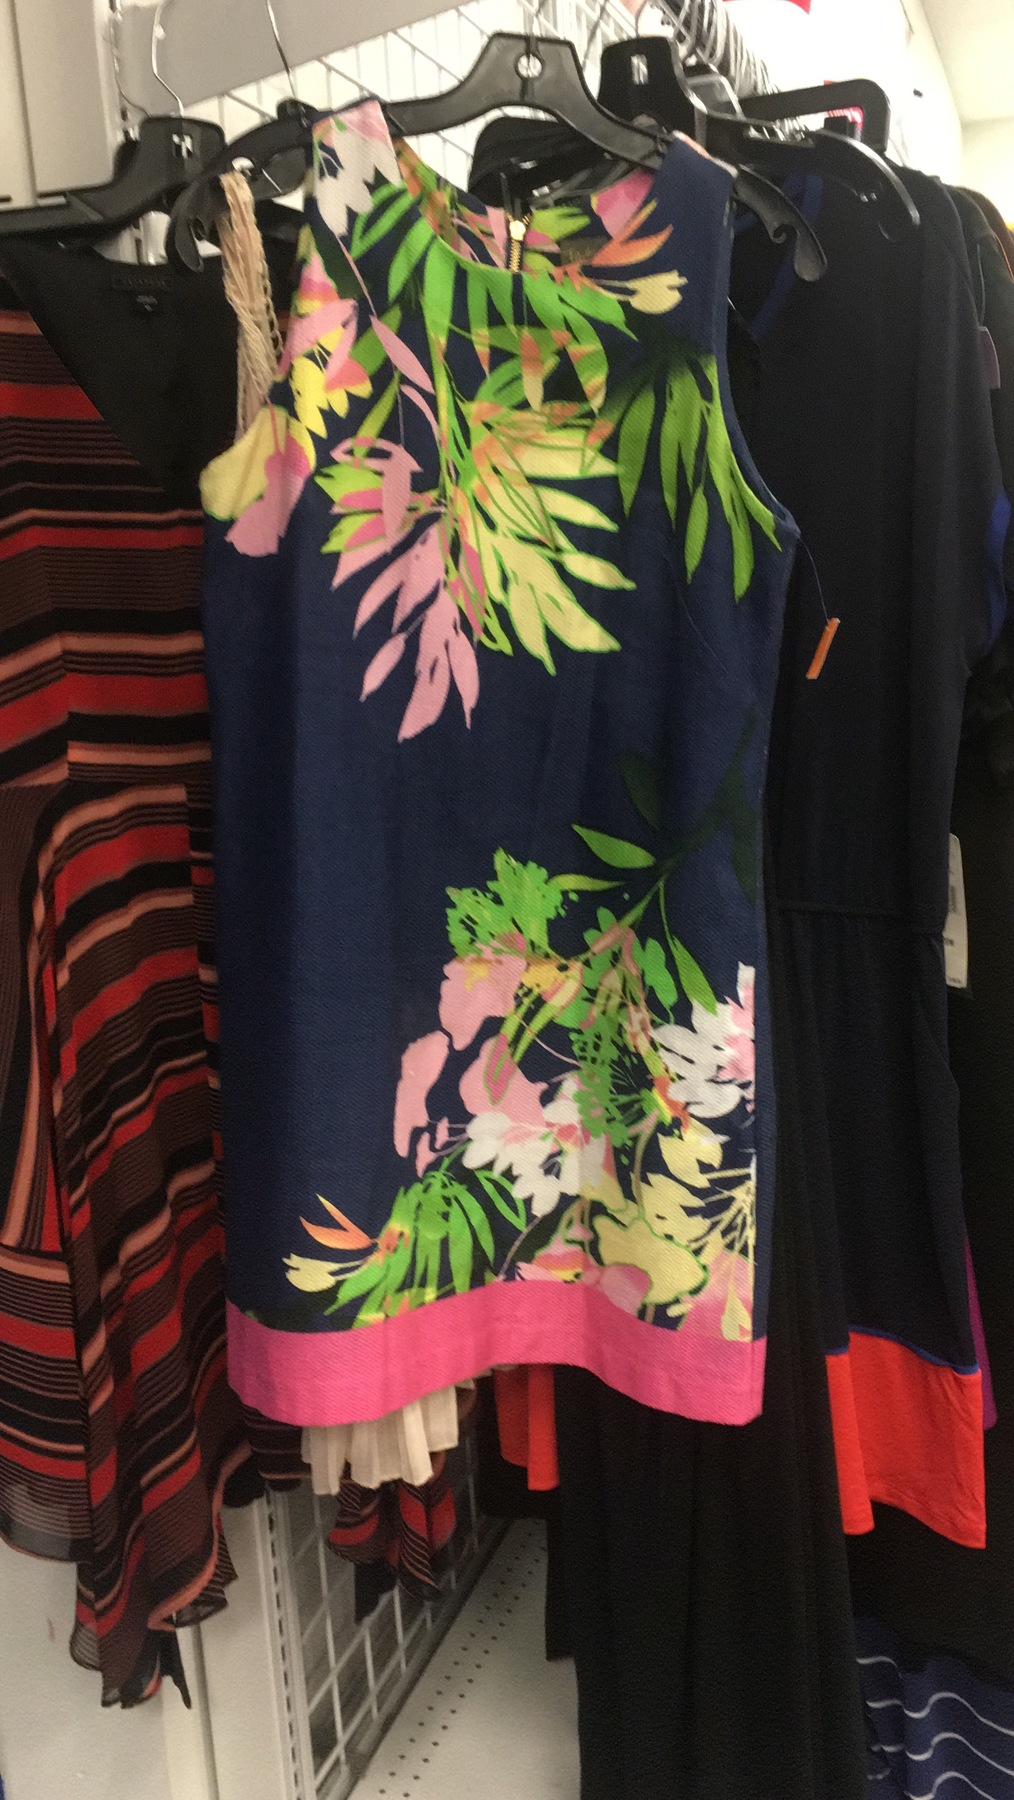 summer day dress found at Kings Highway Goodwill